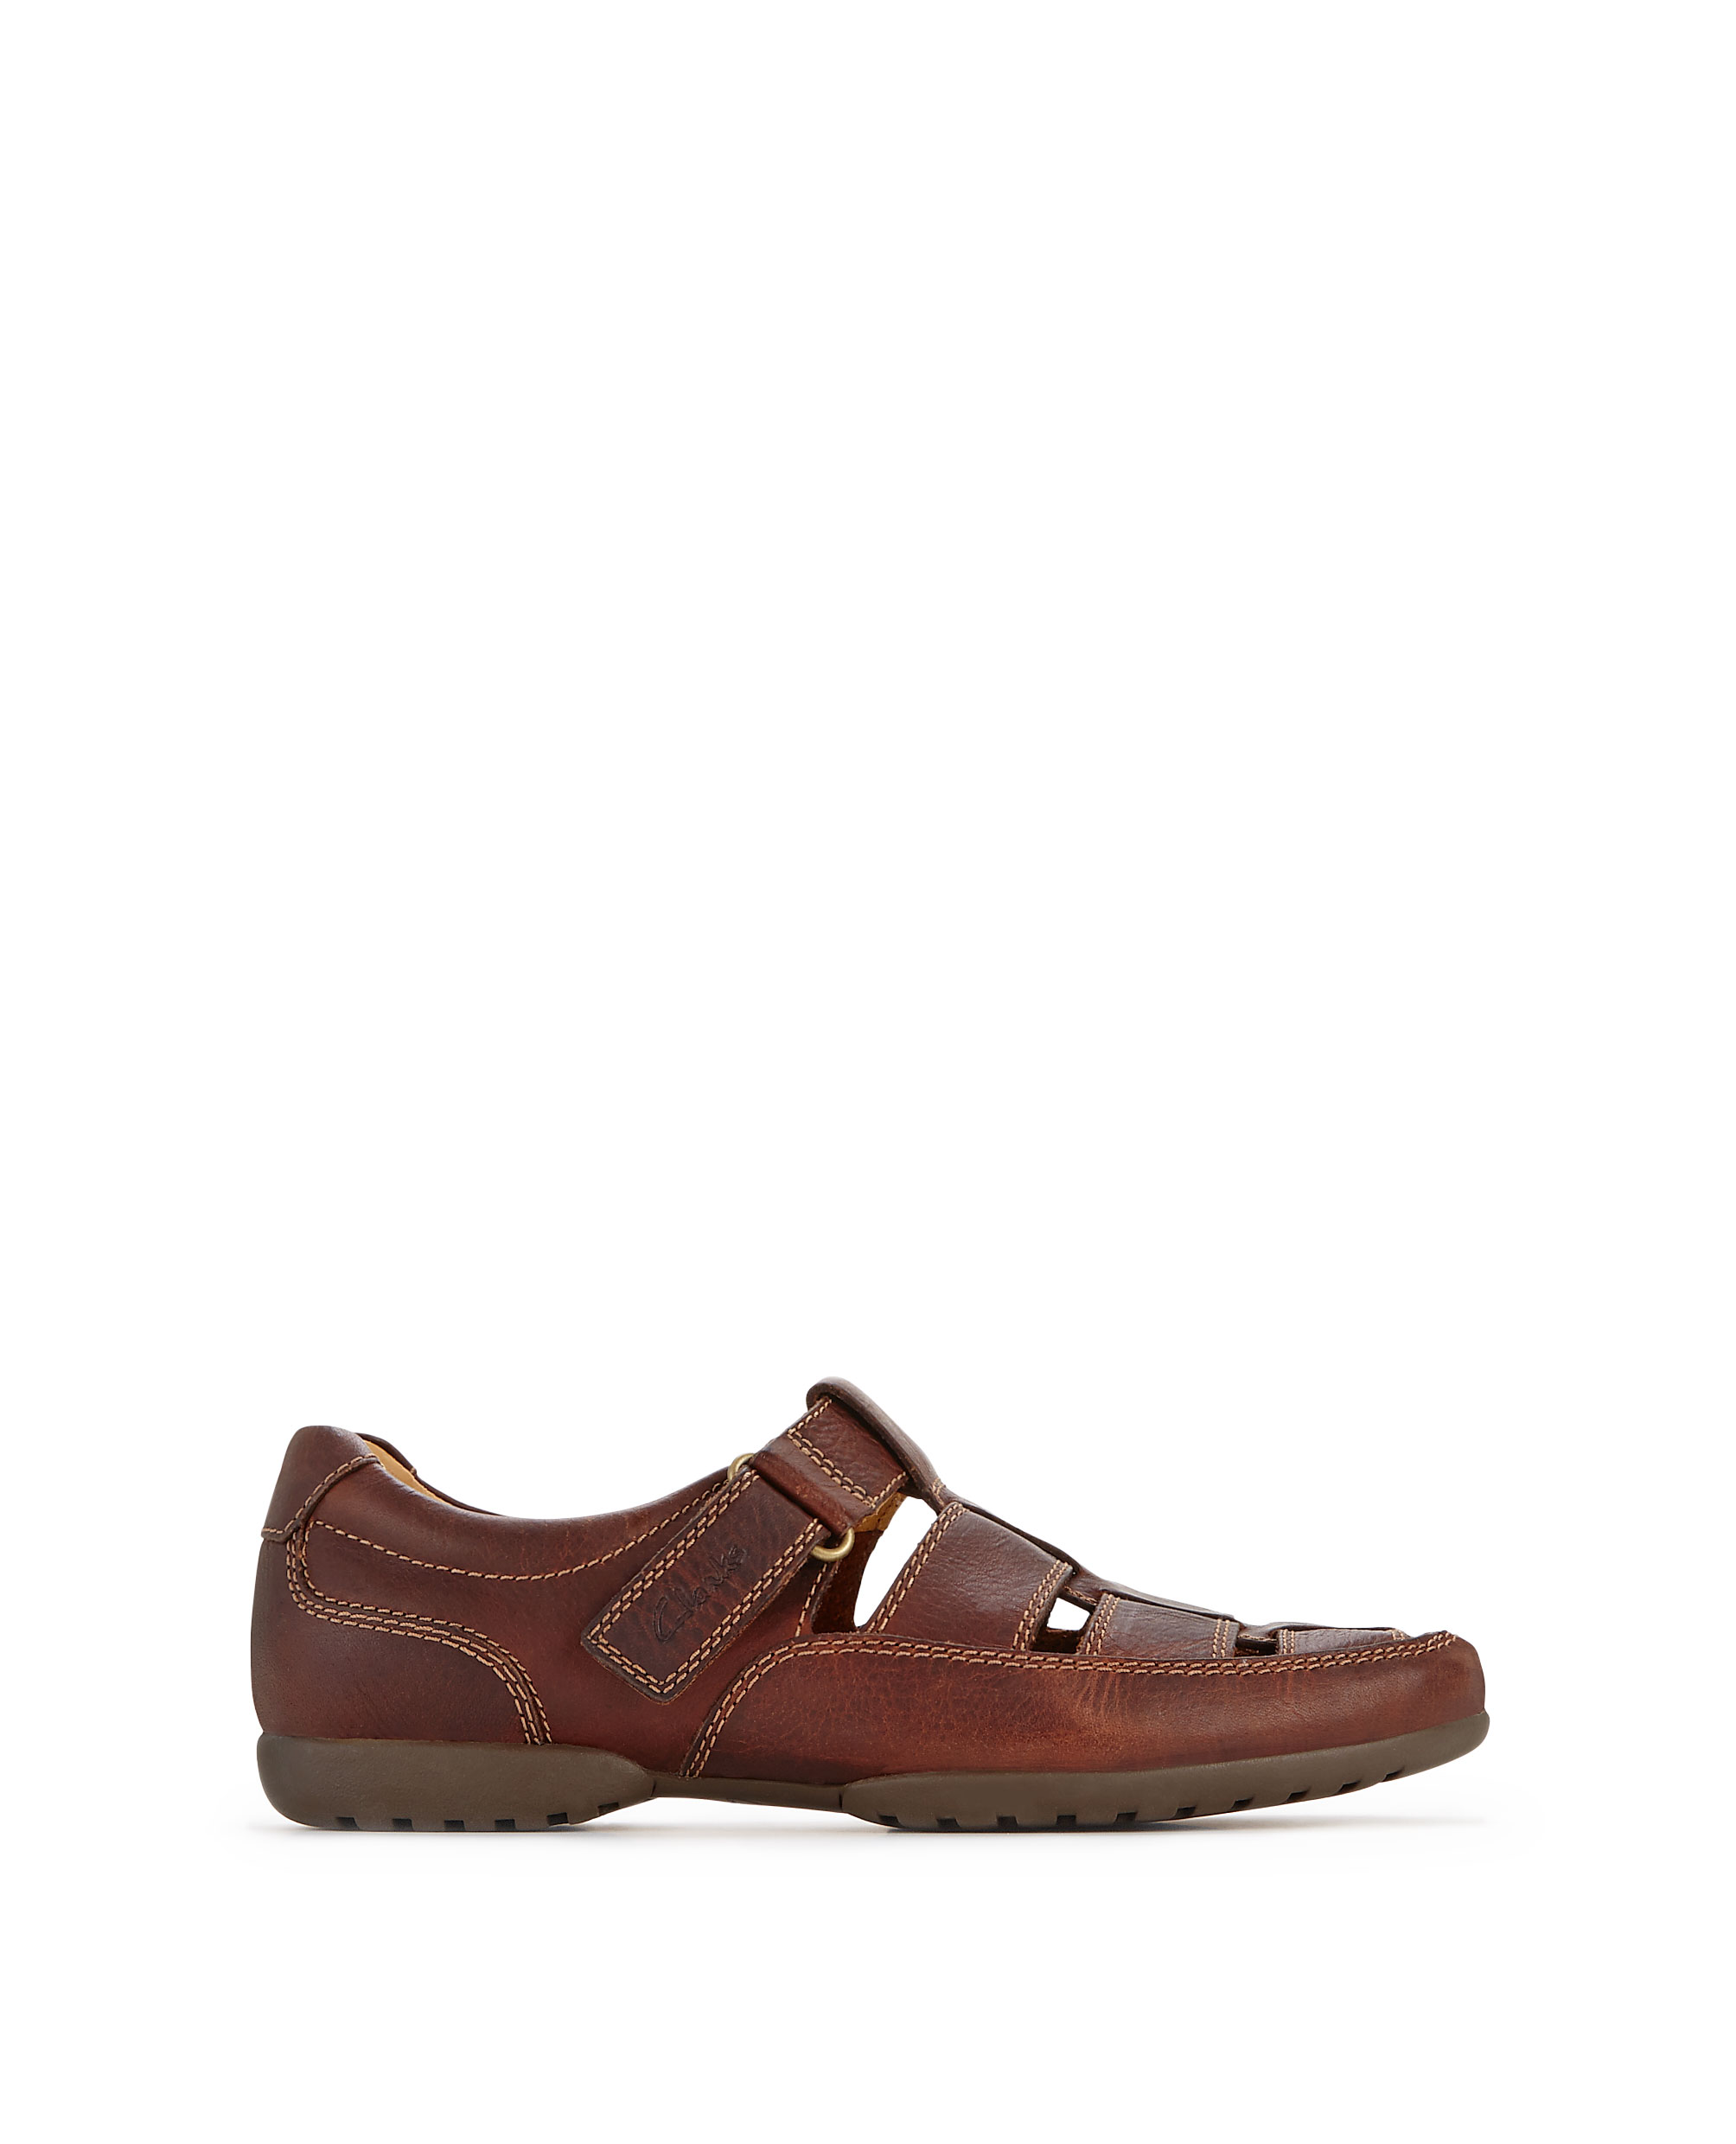 Clarks Recline Wide Fit Leather Shoes